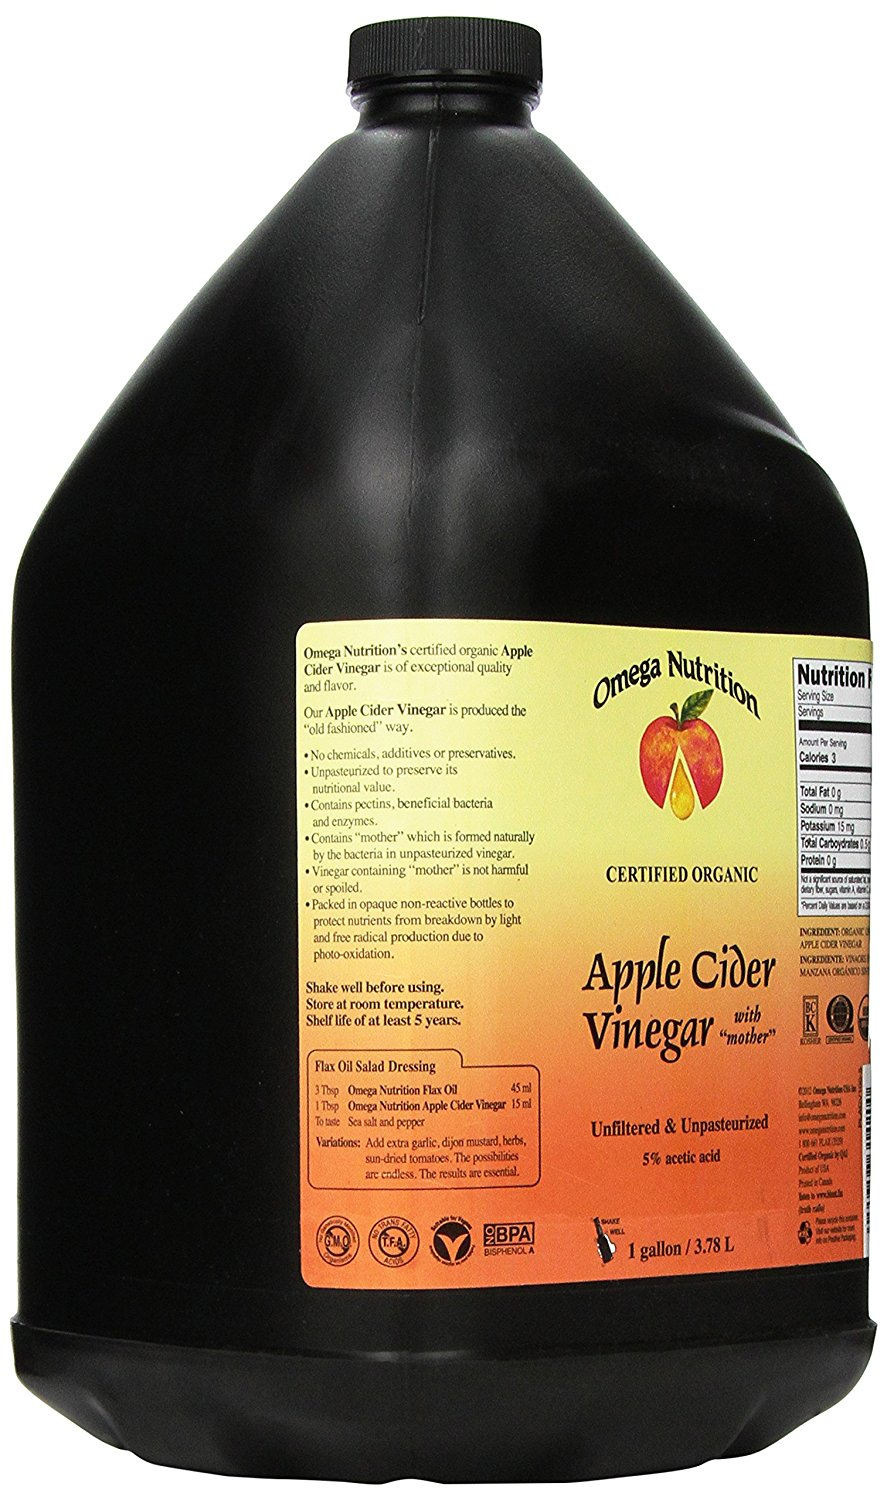 Omega Nutrition Apple Cider Vinegar (3.78L)